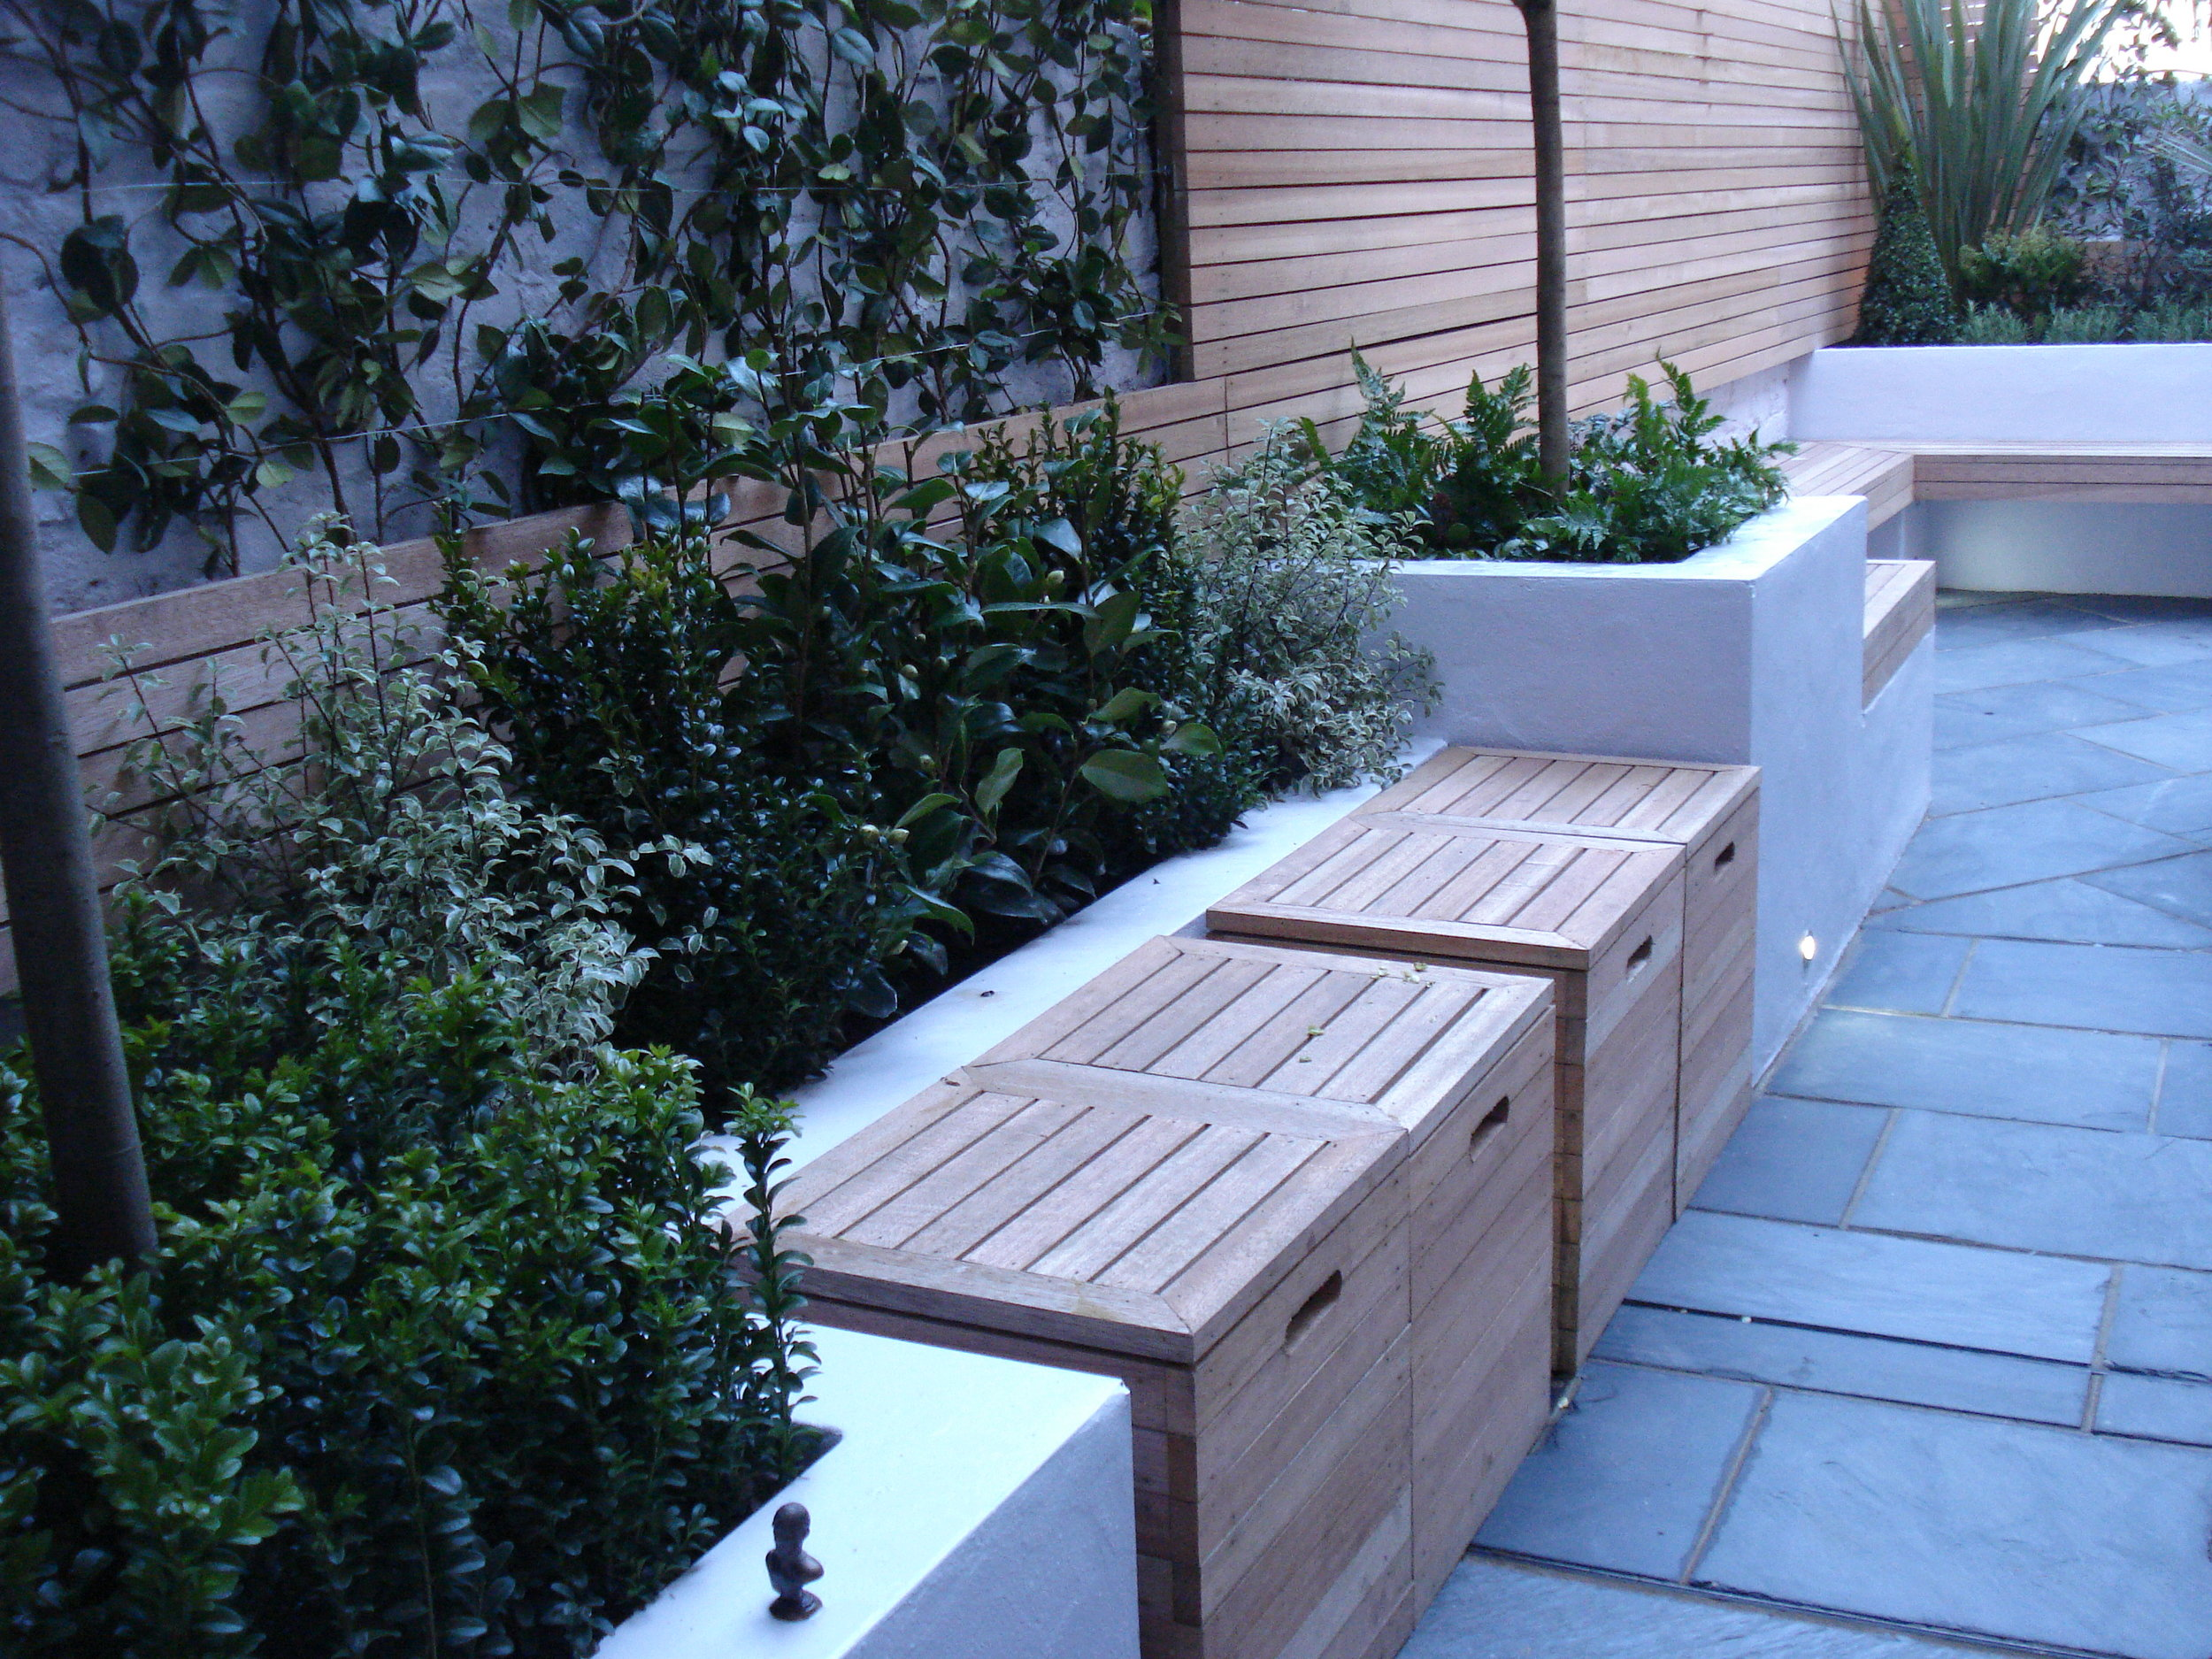 Bespoke box seating